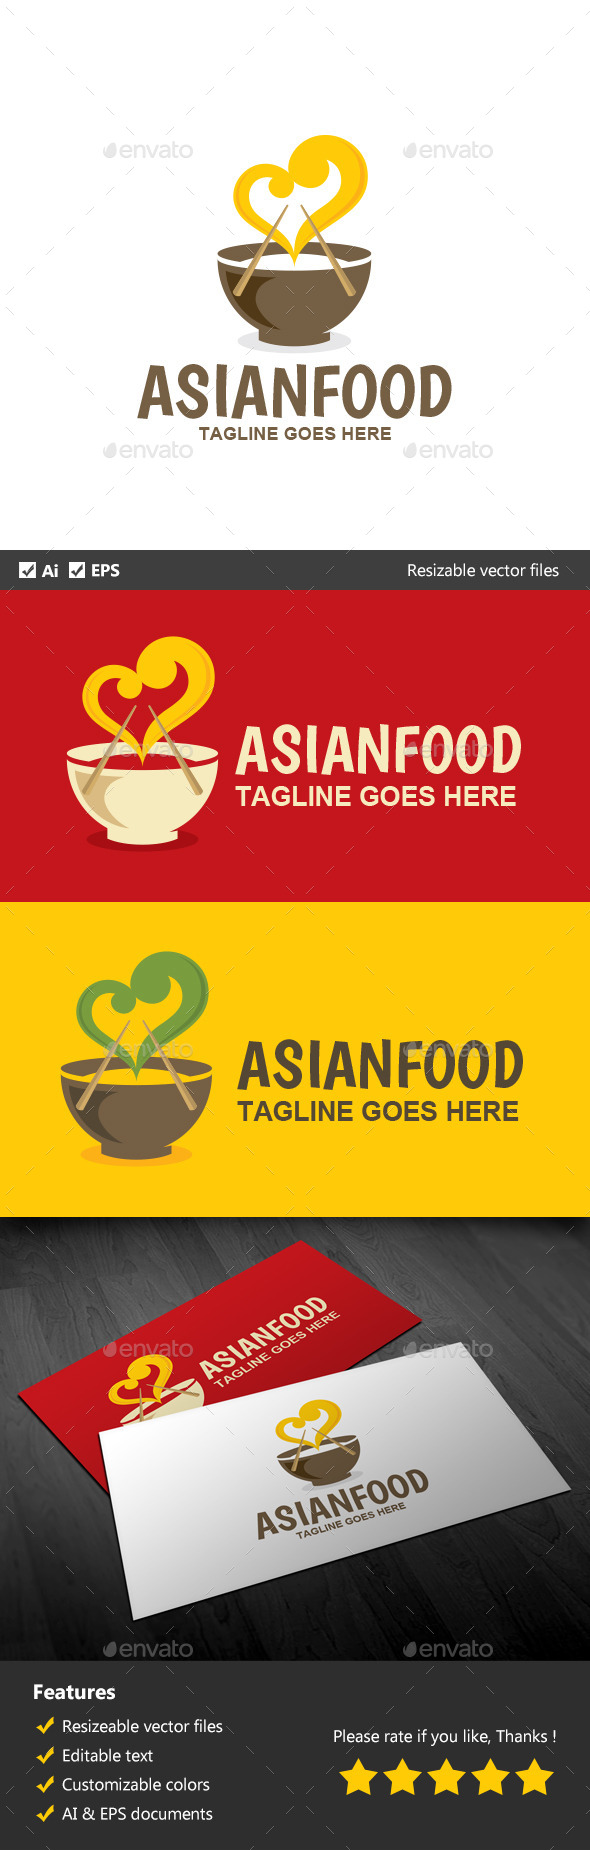 Asian Food - Food Logo Templates